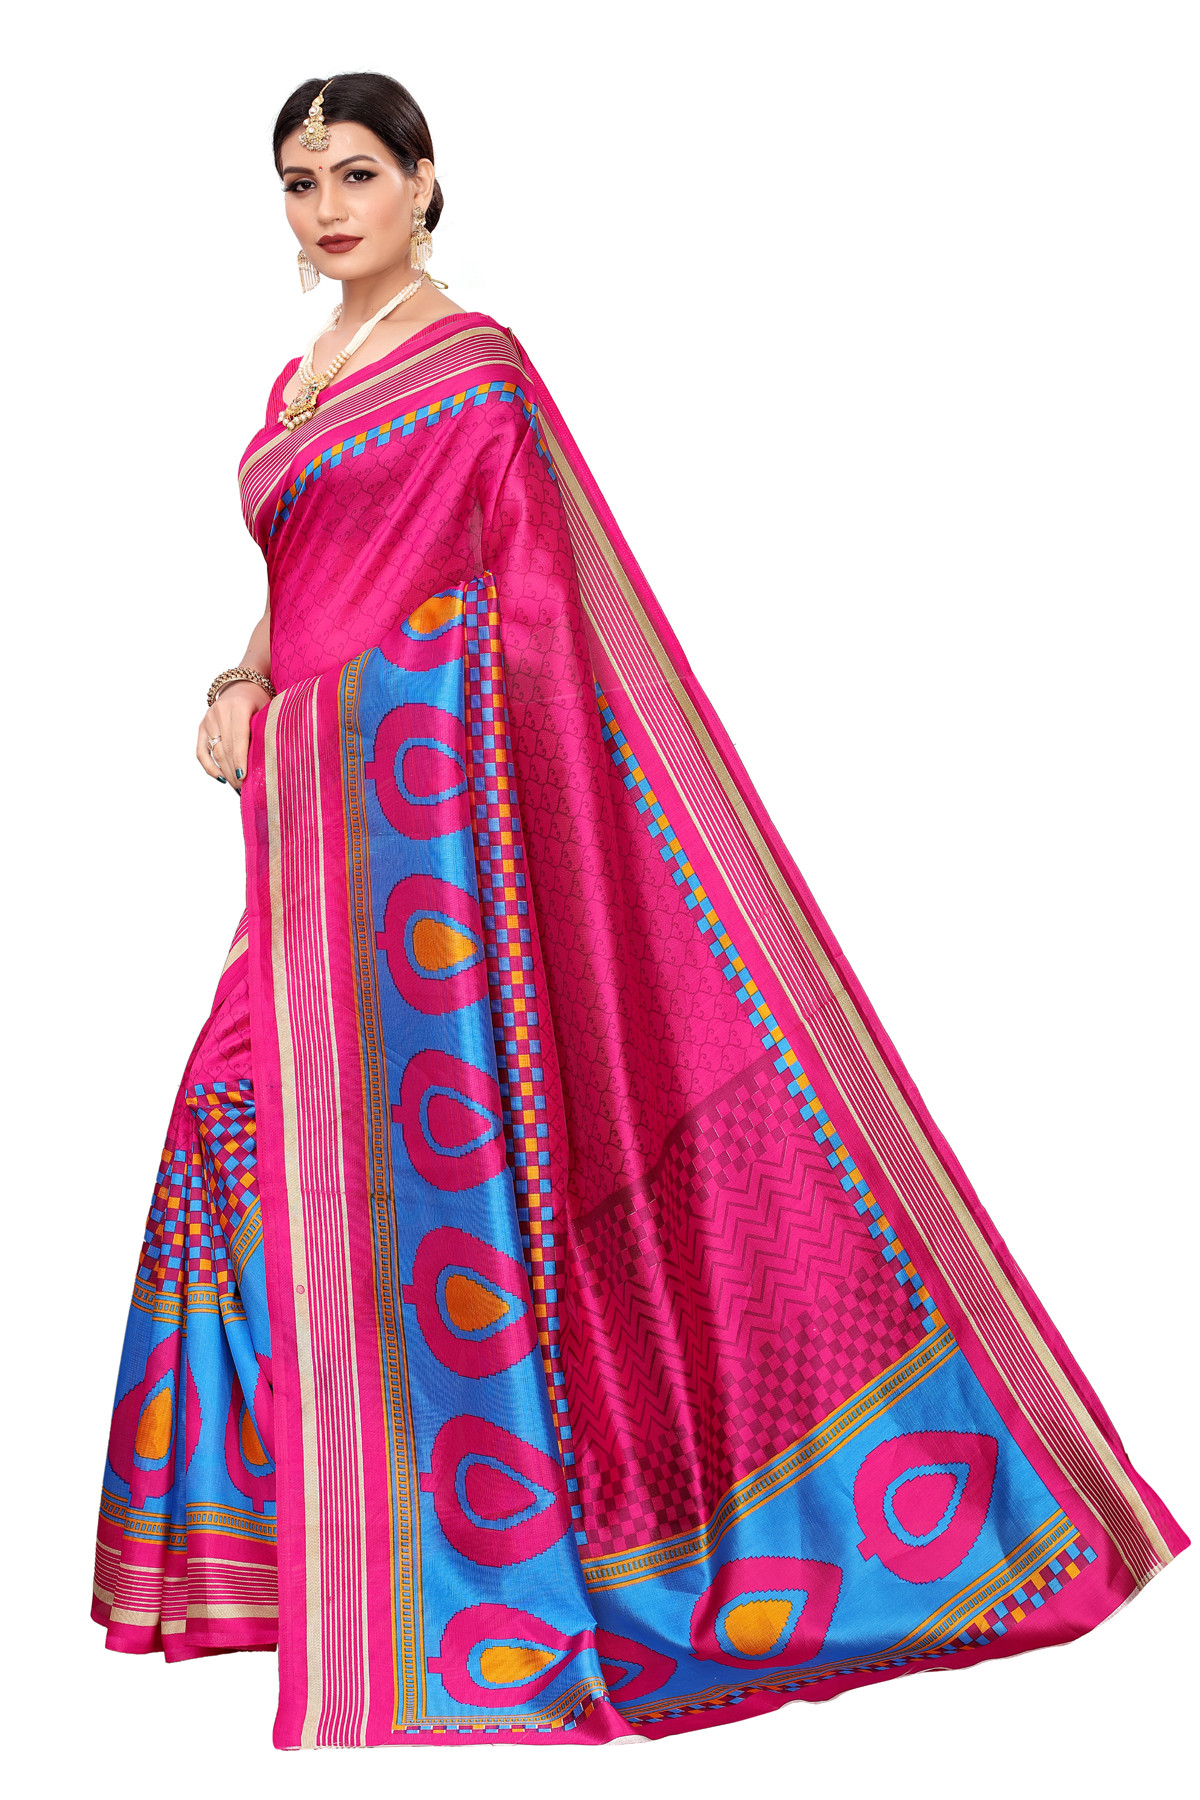 Designer  PinkParty  wear Denting saree